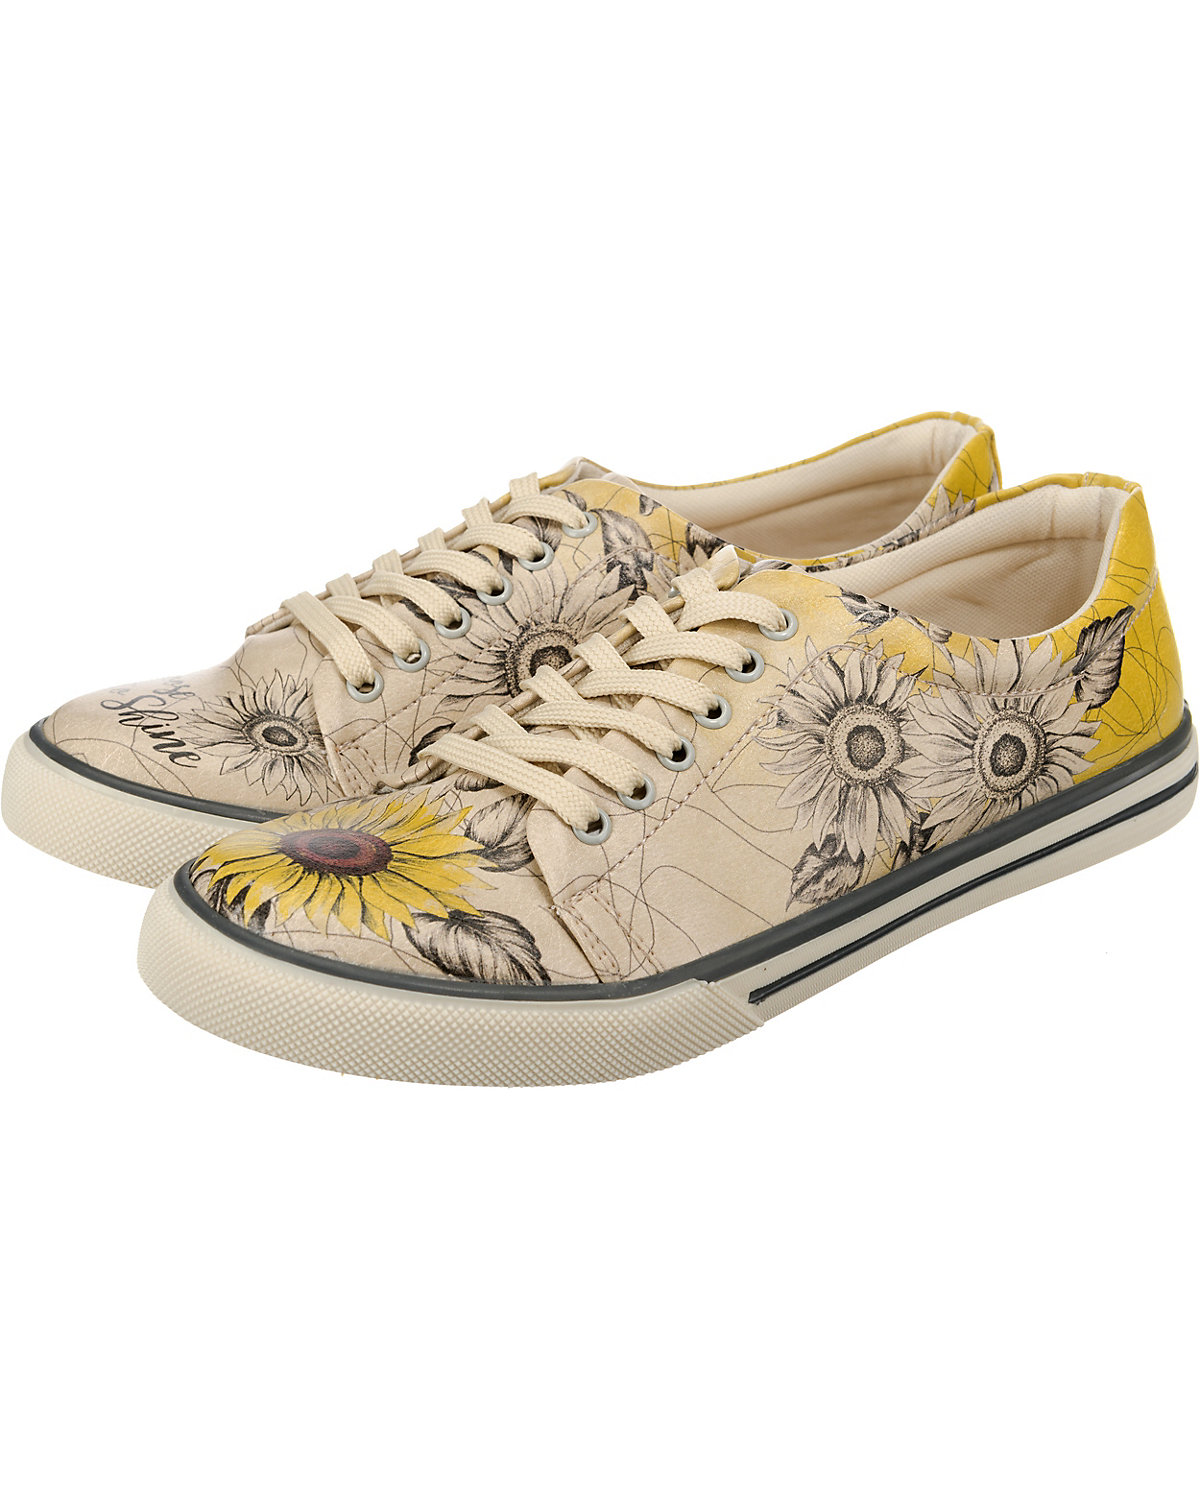 Dogo Shoes, Sunflower Sneakers Low, mehrfarbig